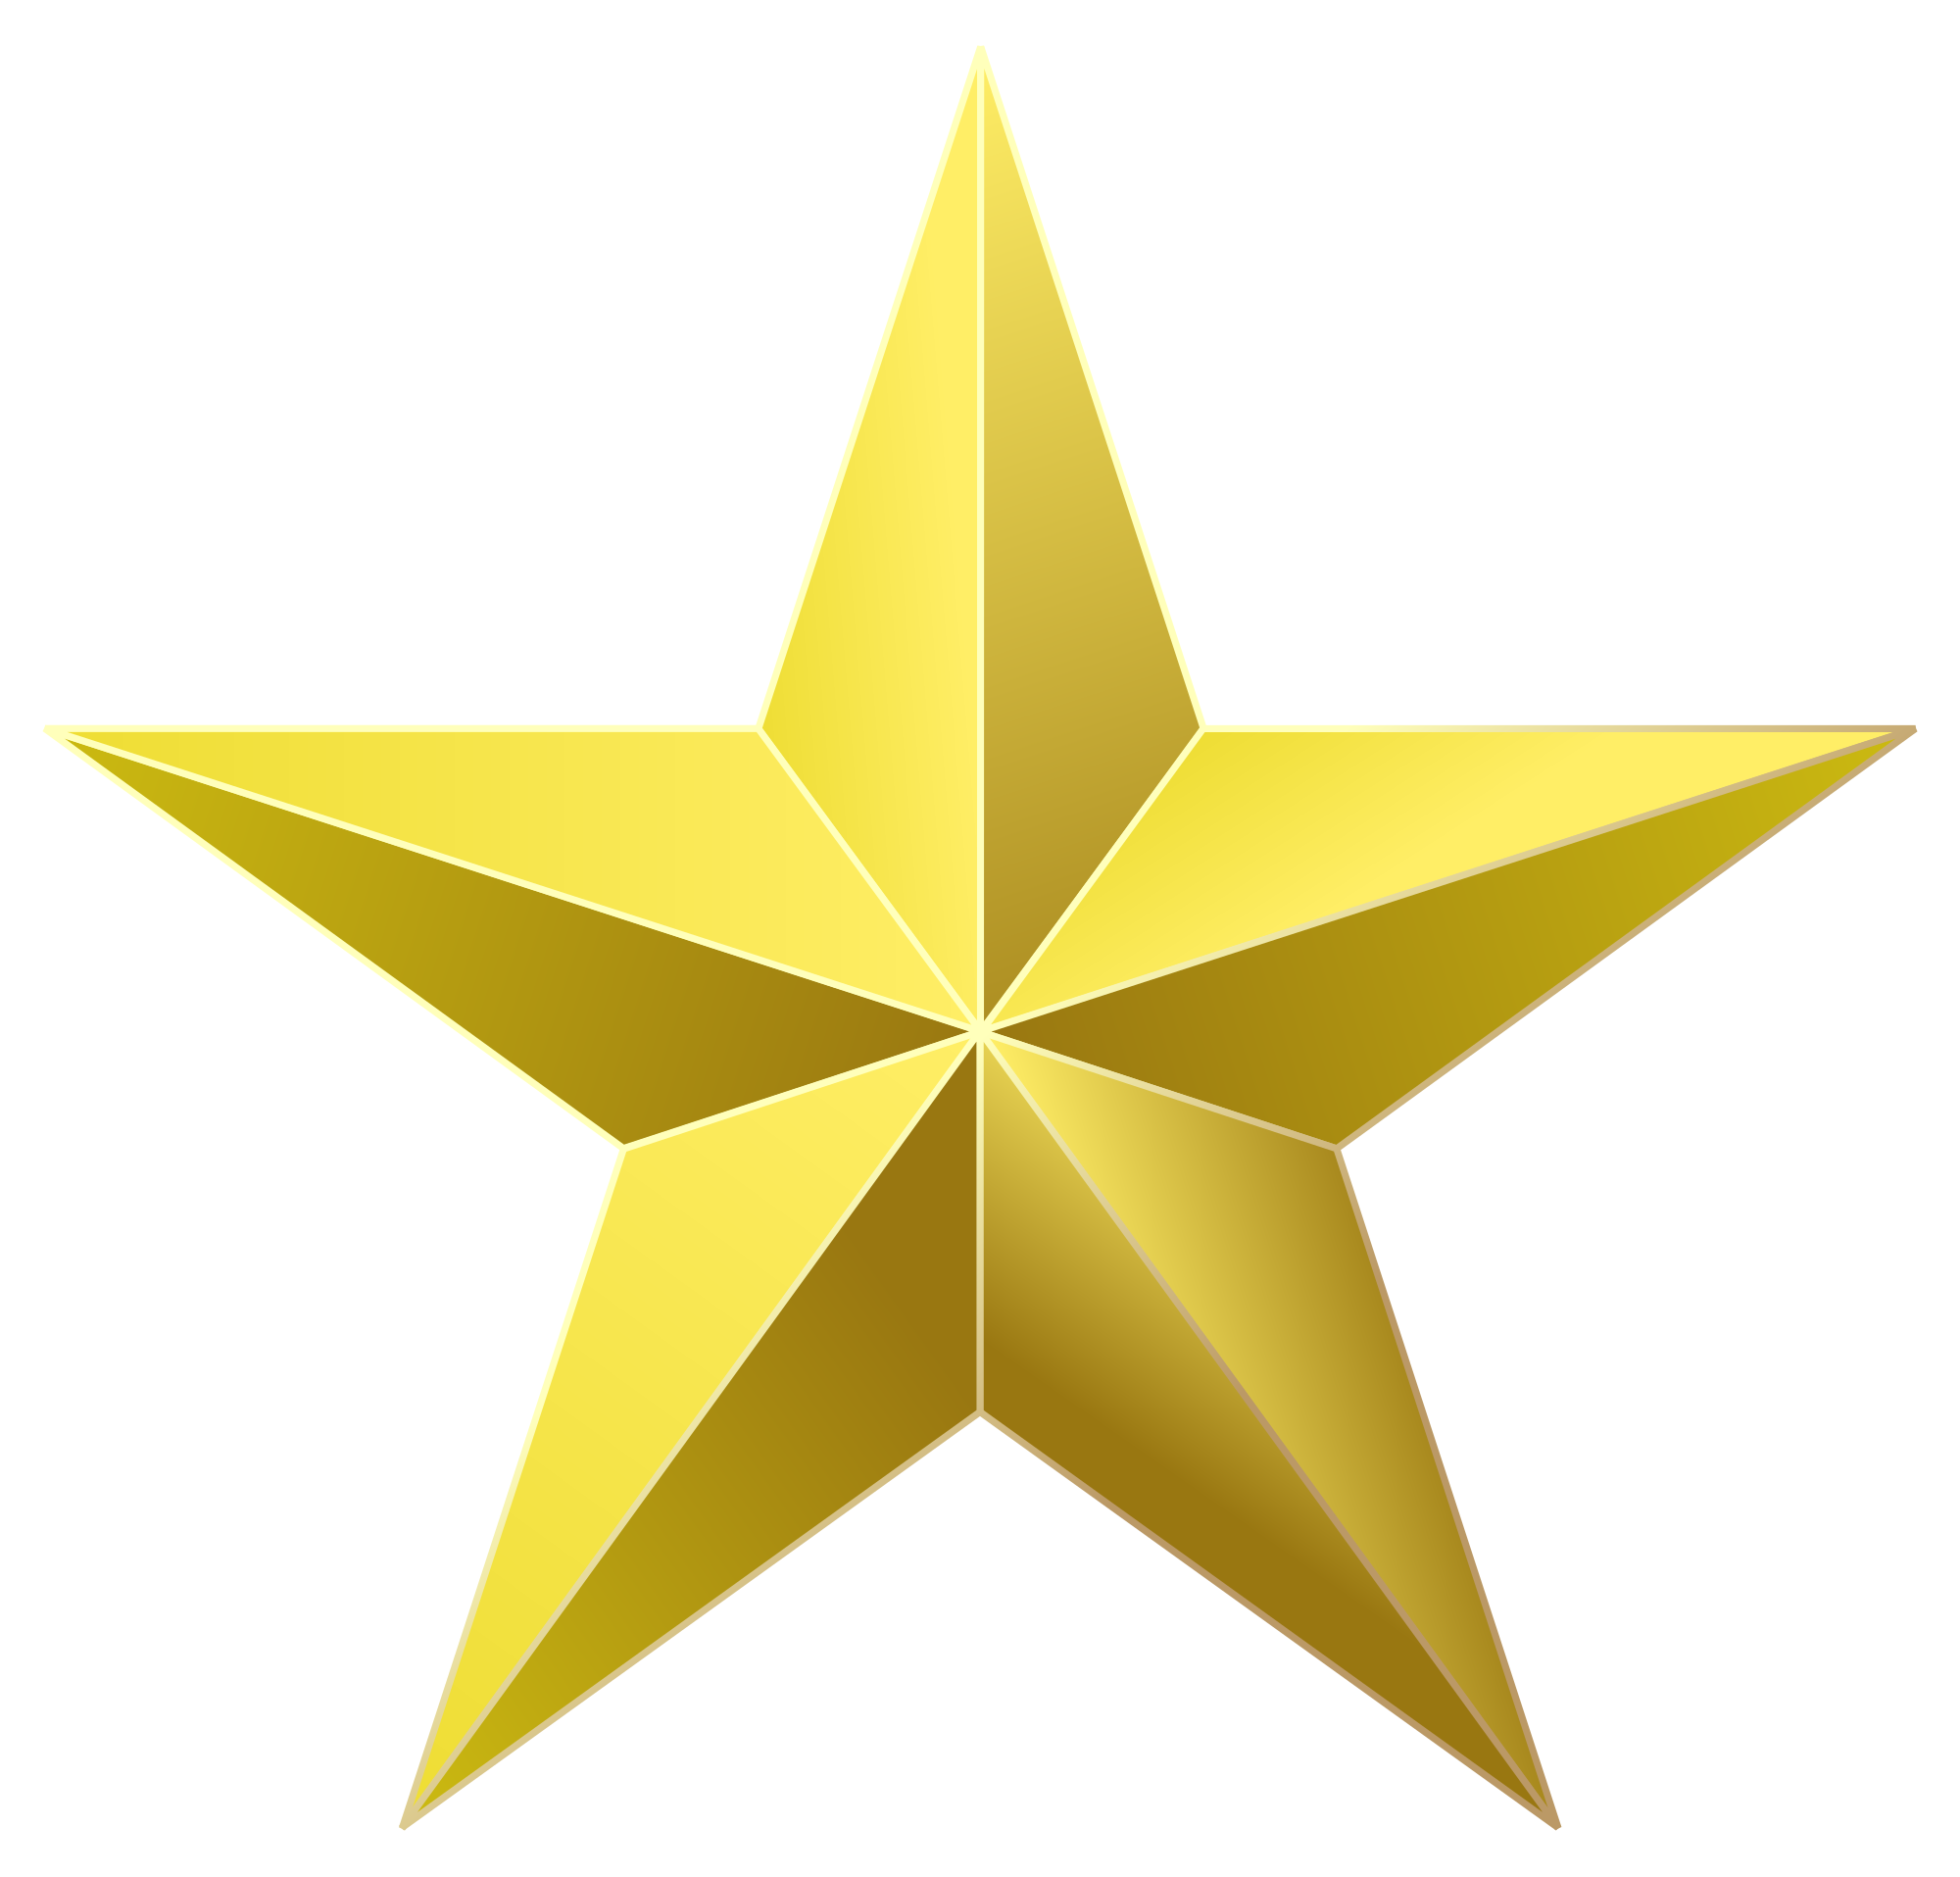 Clipart gold star award vector freeuse stock File:Golden star 2.svg - Wikimedia Commons vector freeuse stock